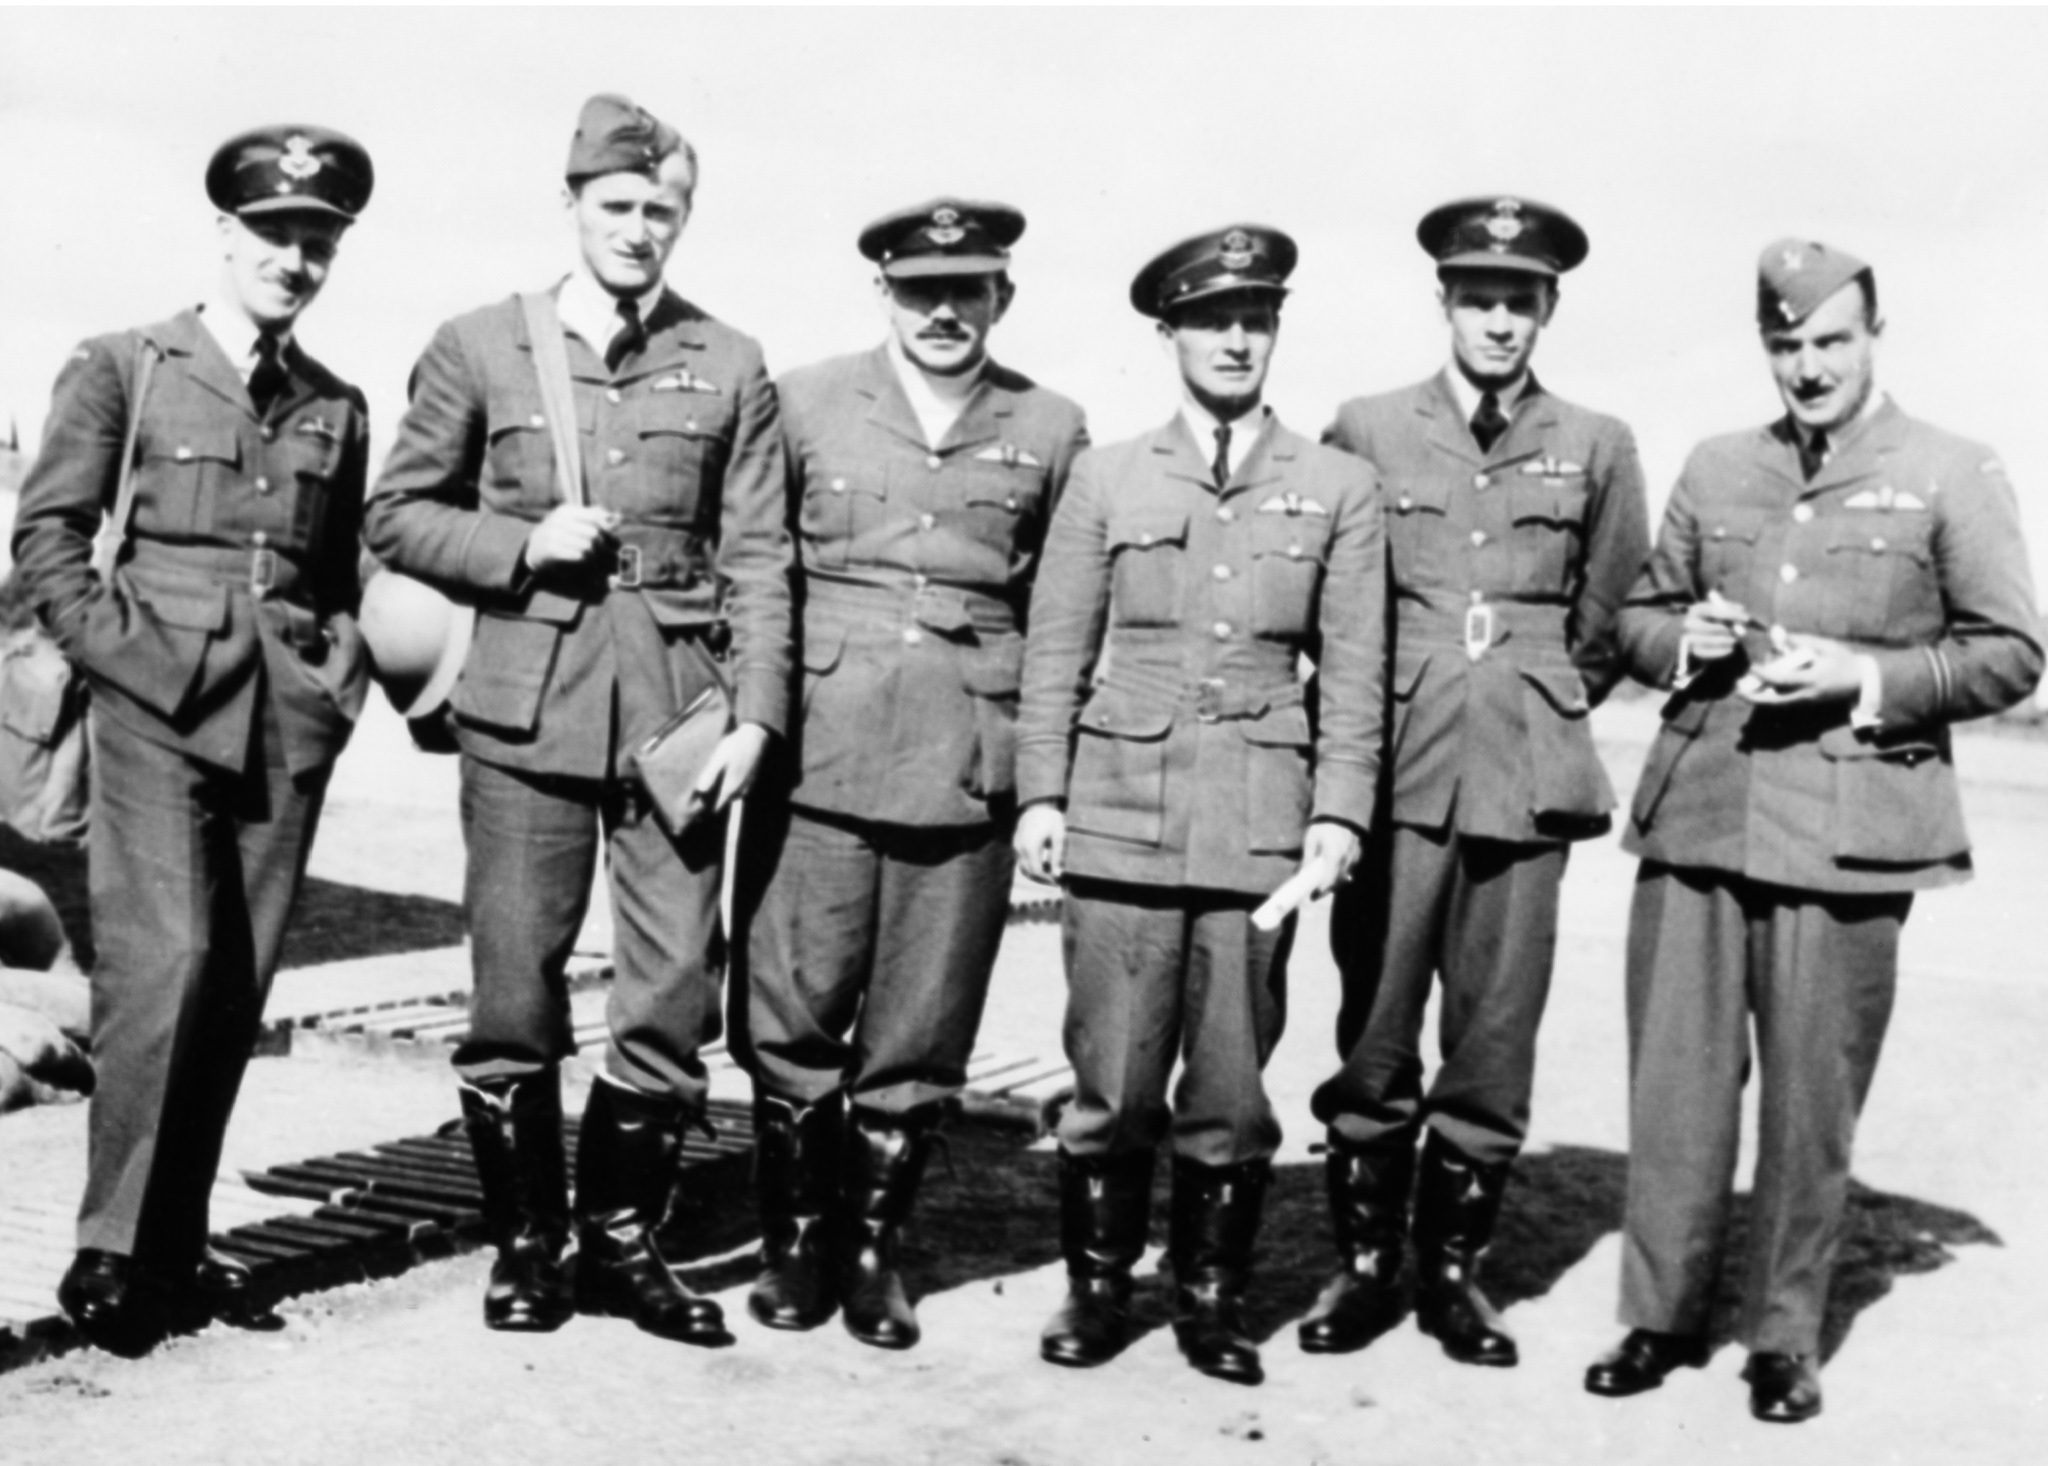 Six men wearing military uniforms with belted tunics, stand in a row.